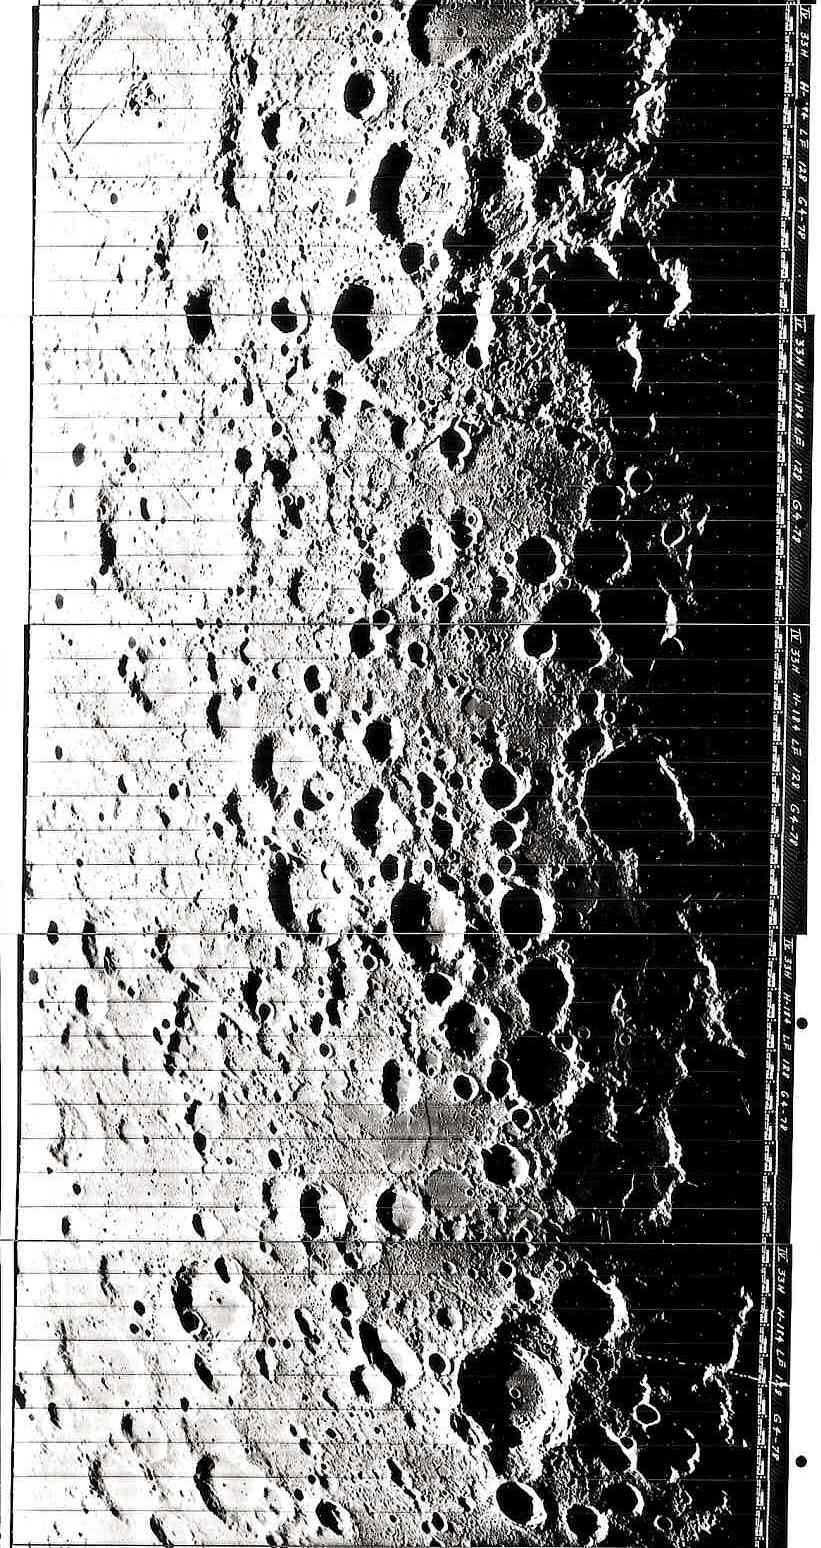 Lunar surface photograph